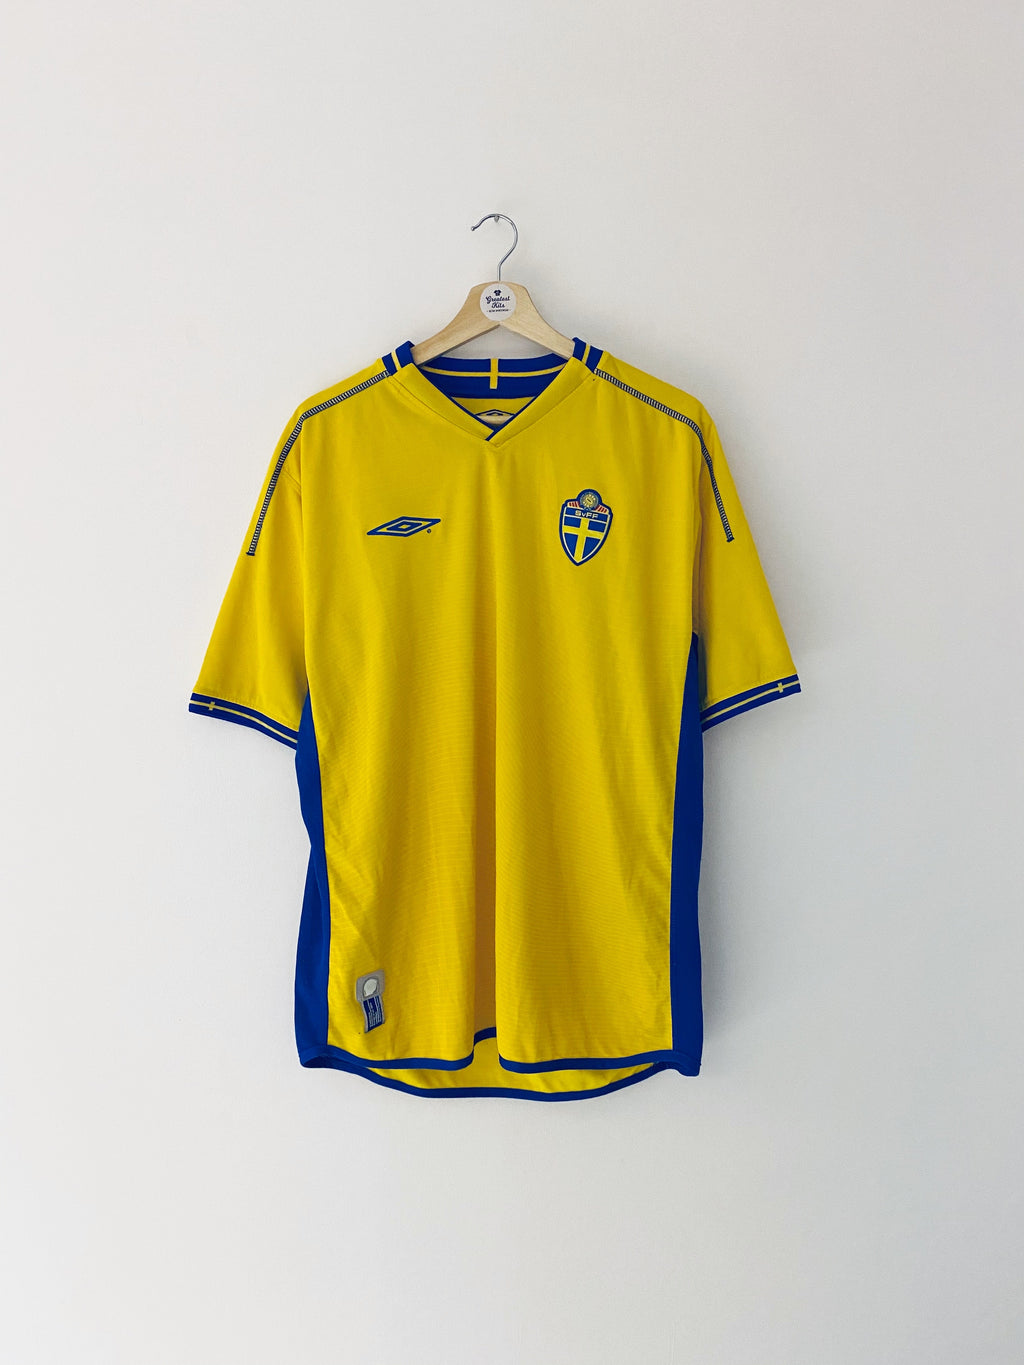 2003/04 Sweden Home Shirt (L) 9/10